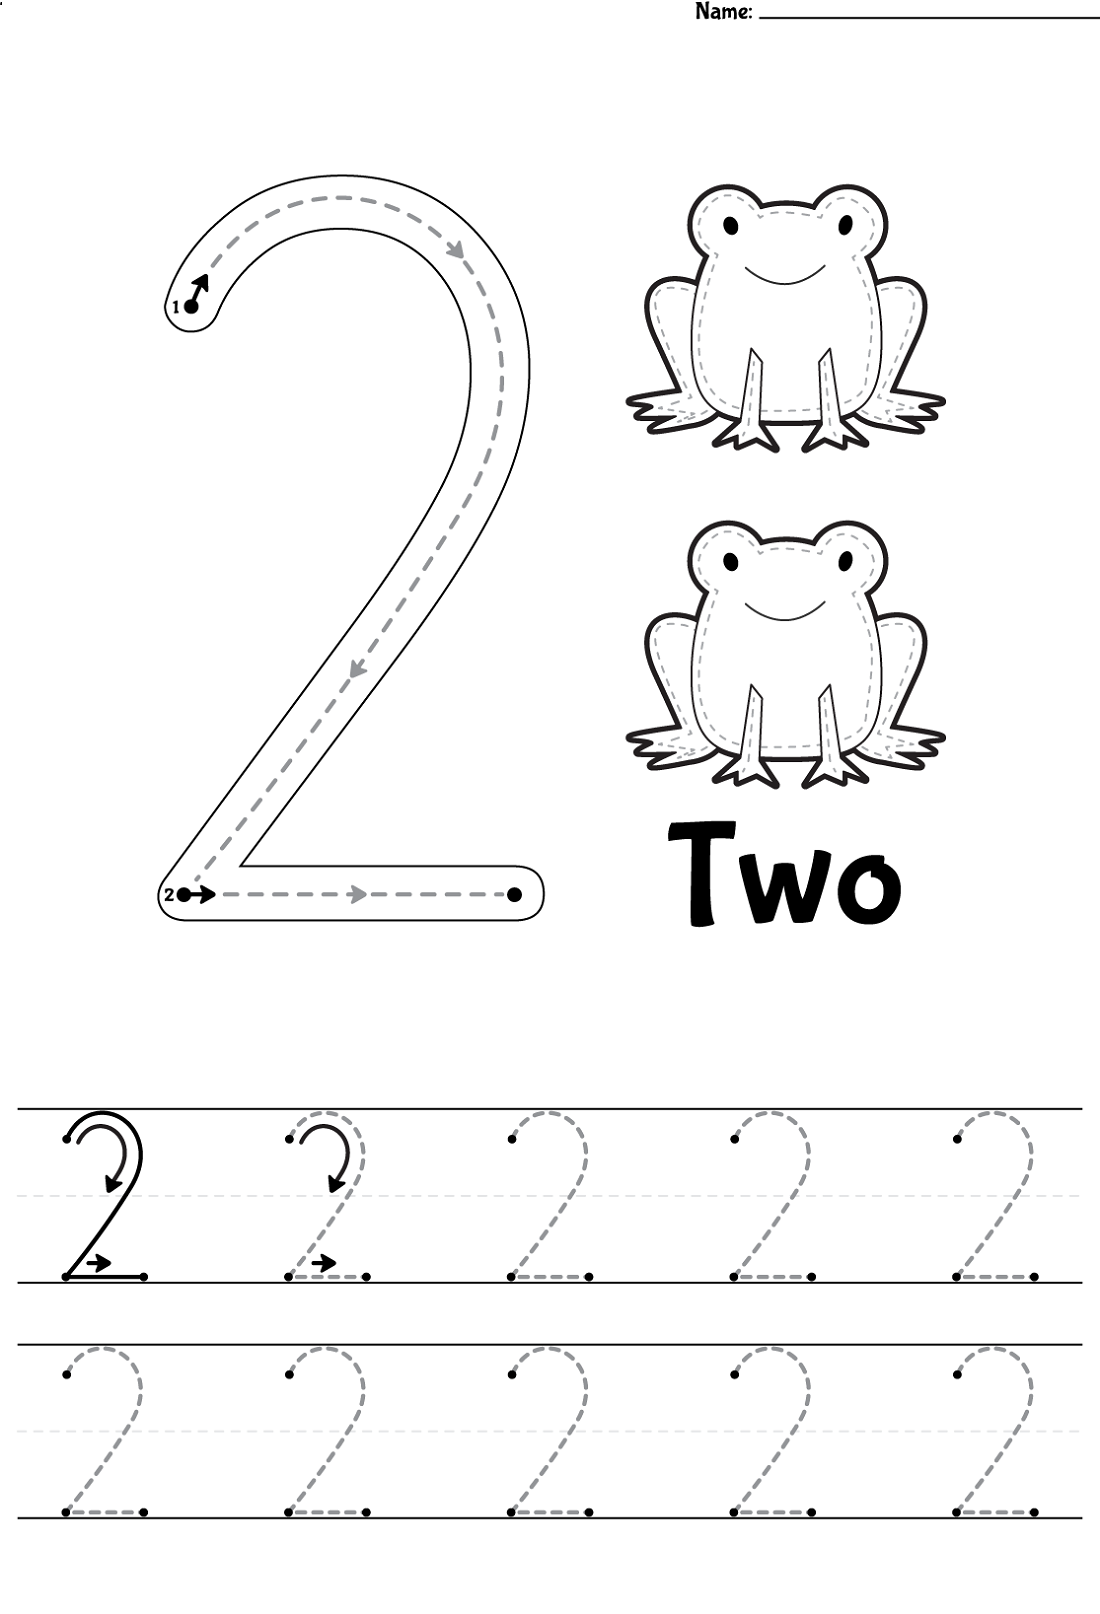 Free Printable Worksheets For 3 Year Olds In